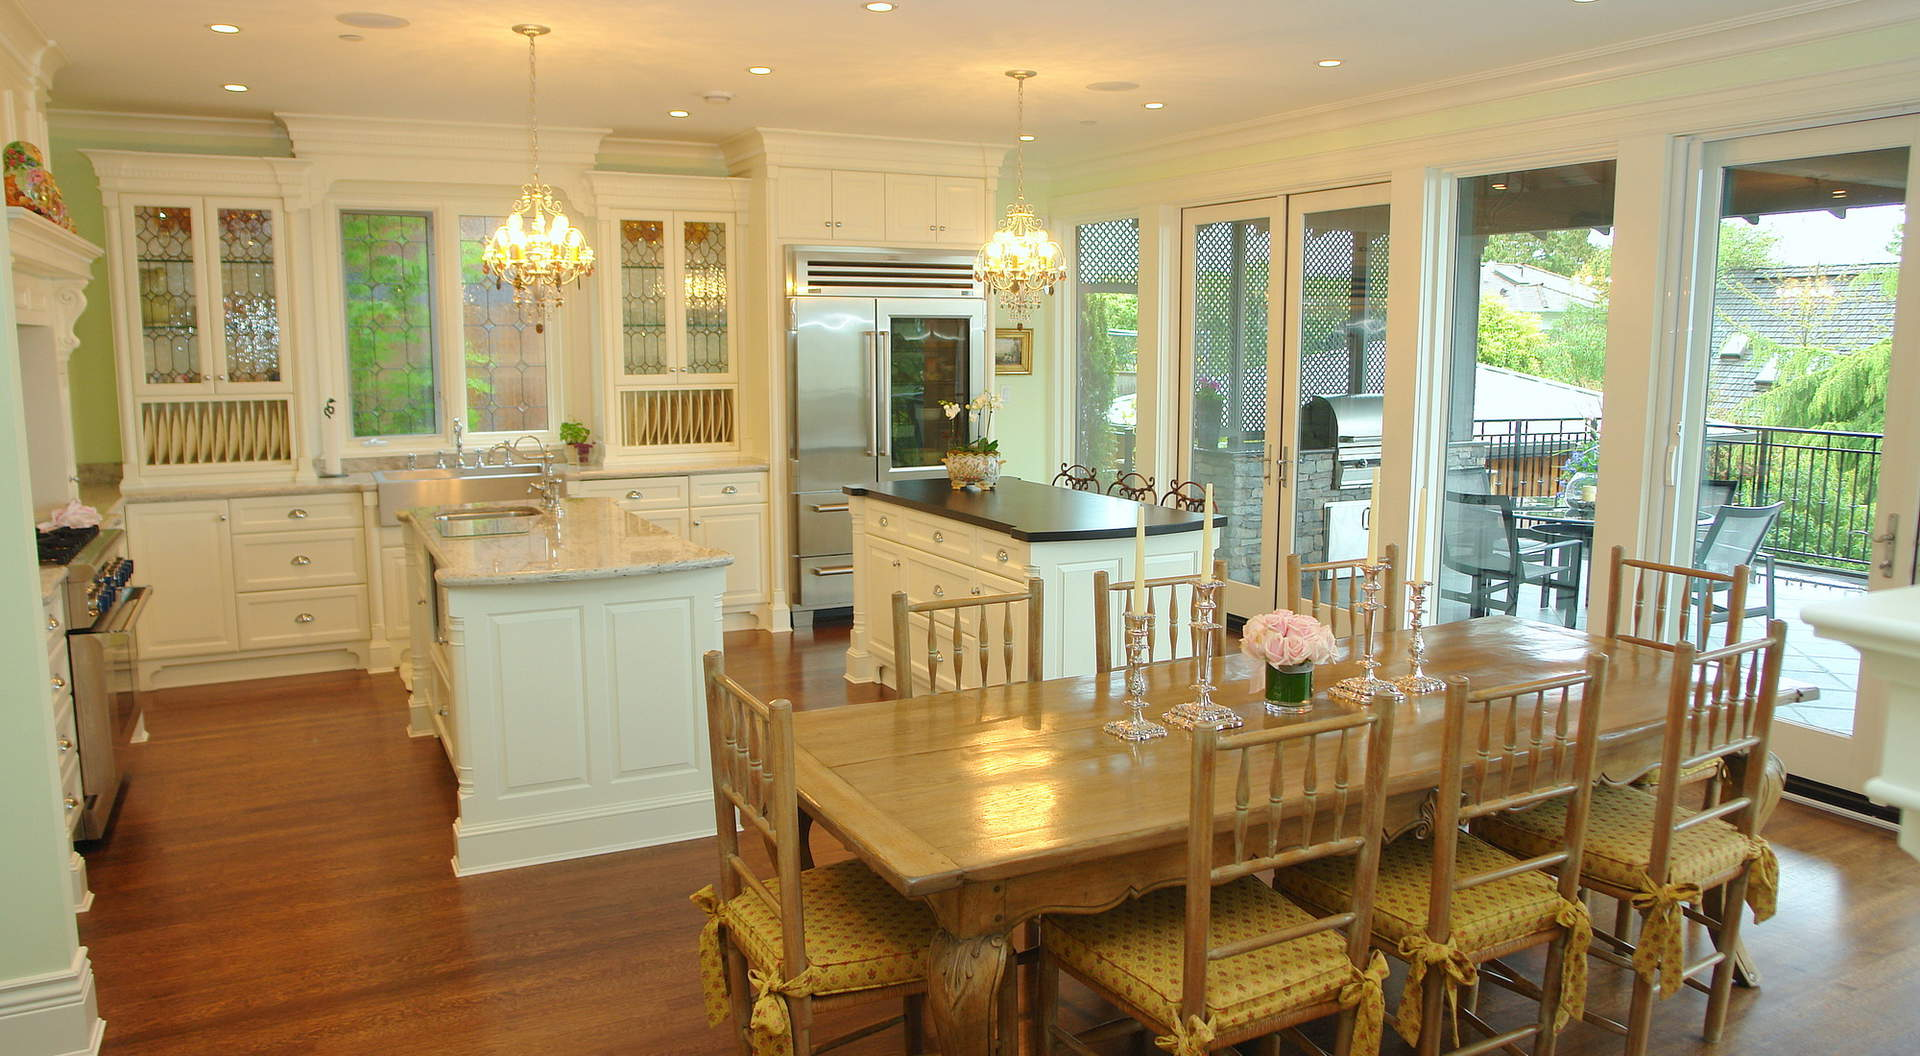 Spectacular Gourmet Island Kitchen and Eating Area